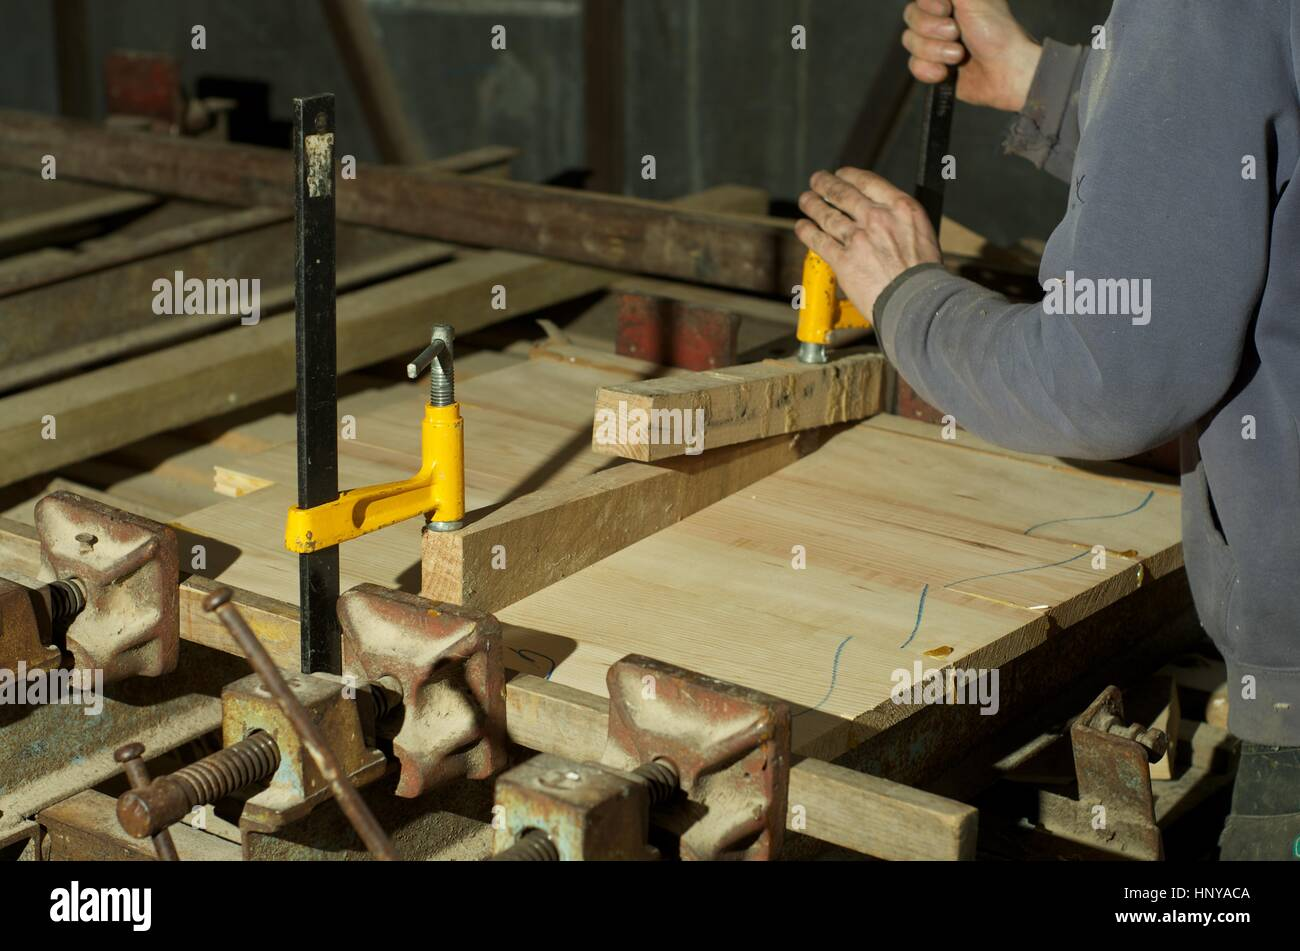 Carpenter placing wood in a press for gluing - Stock Image